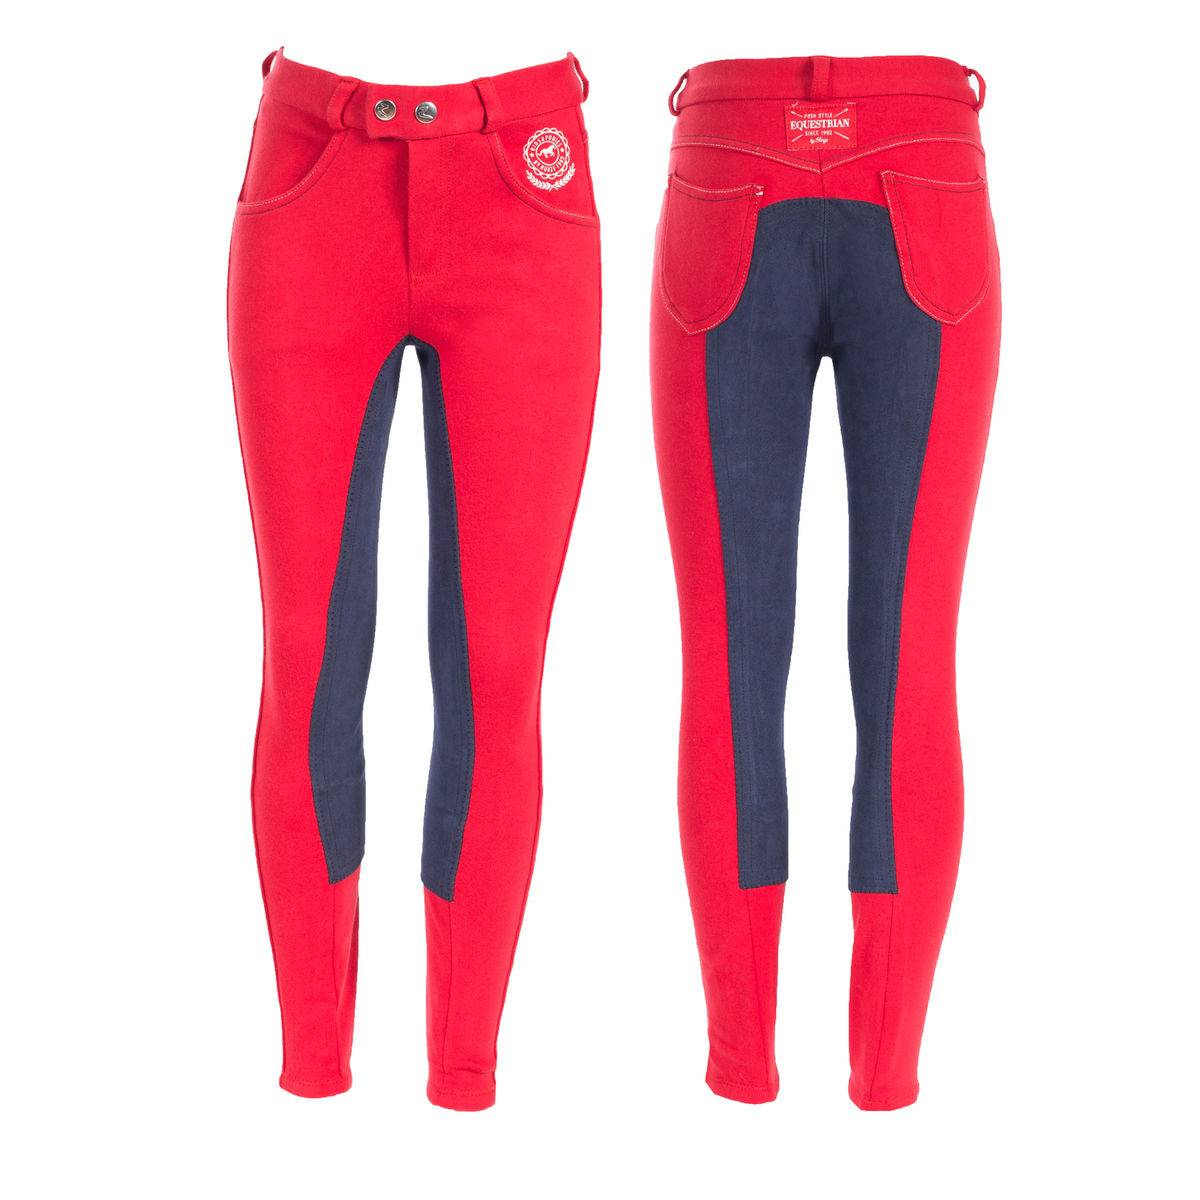 Horze Kids & Ponies Jen Jr Full Seat Breeches - Kids